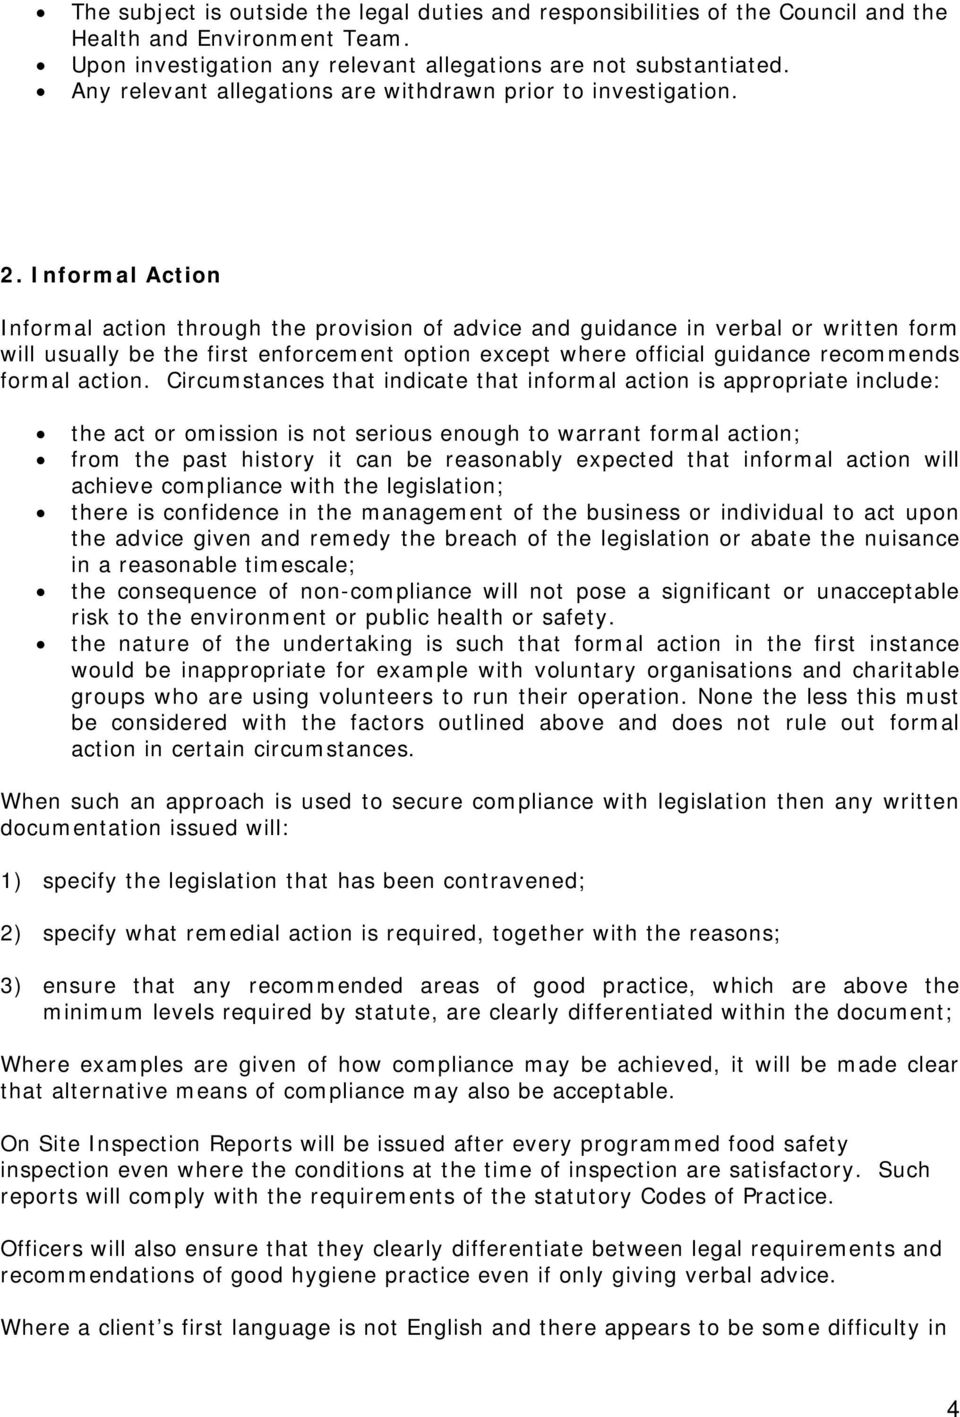 Informal Action Informal action through the provision of advice and guidance in verbal or written form will usually be the first enforcement option except where official guidance recommends formal